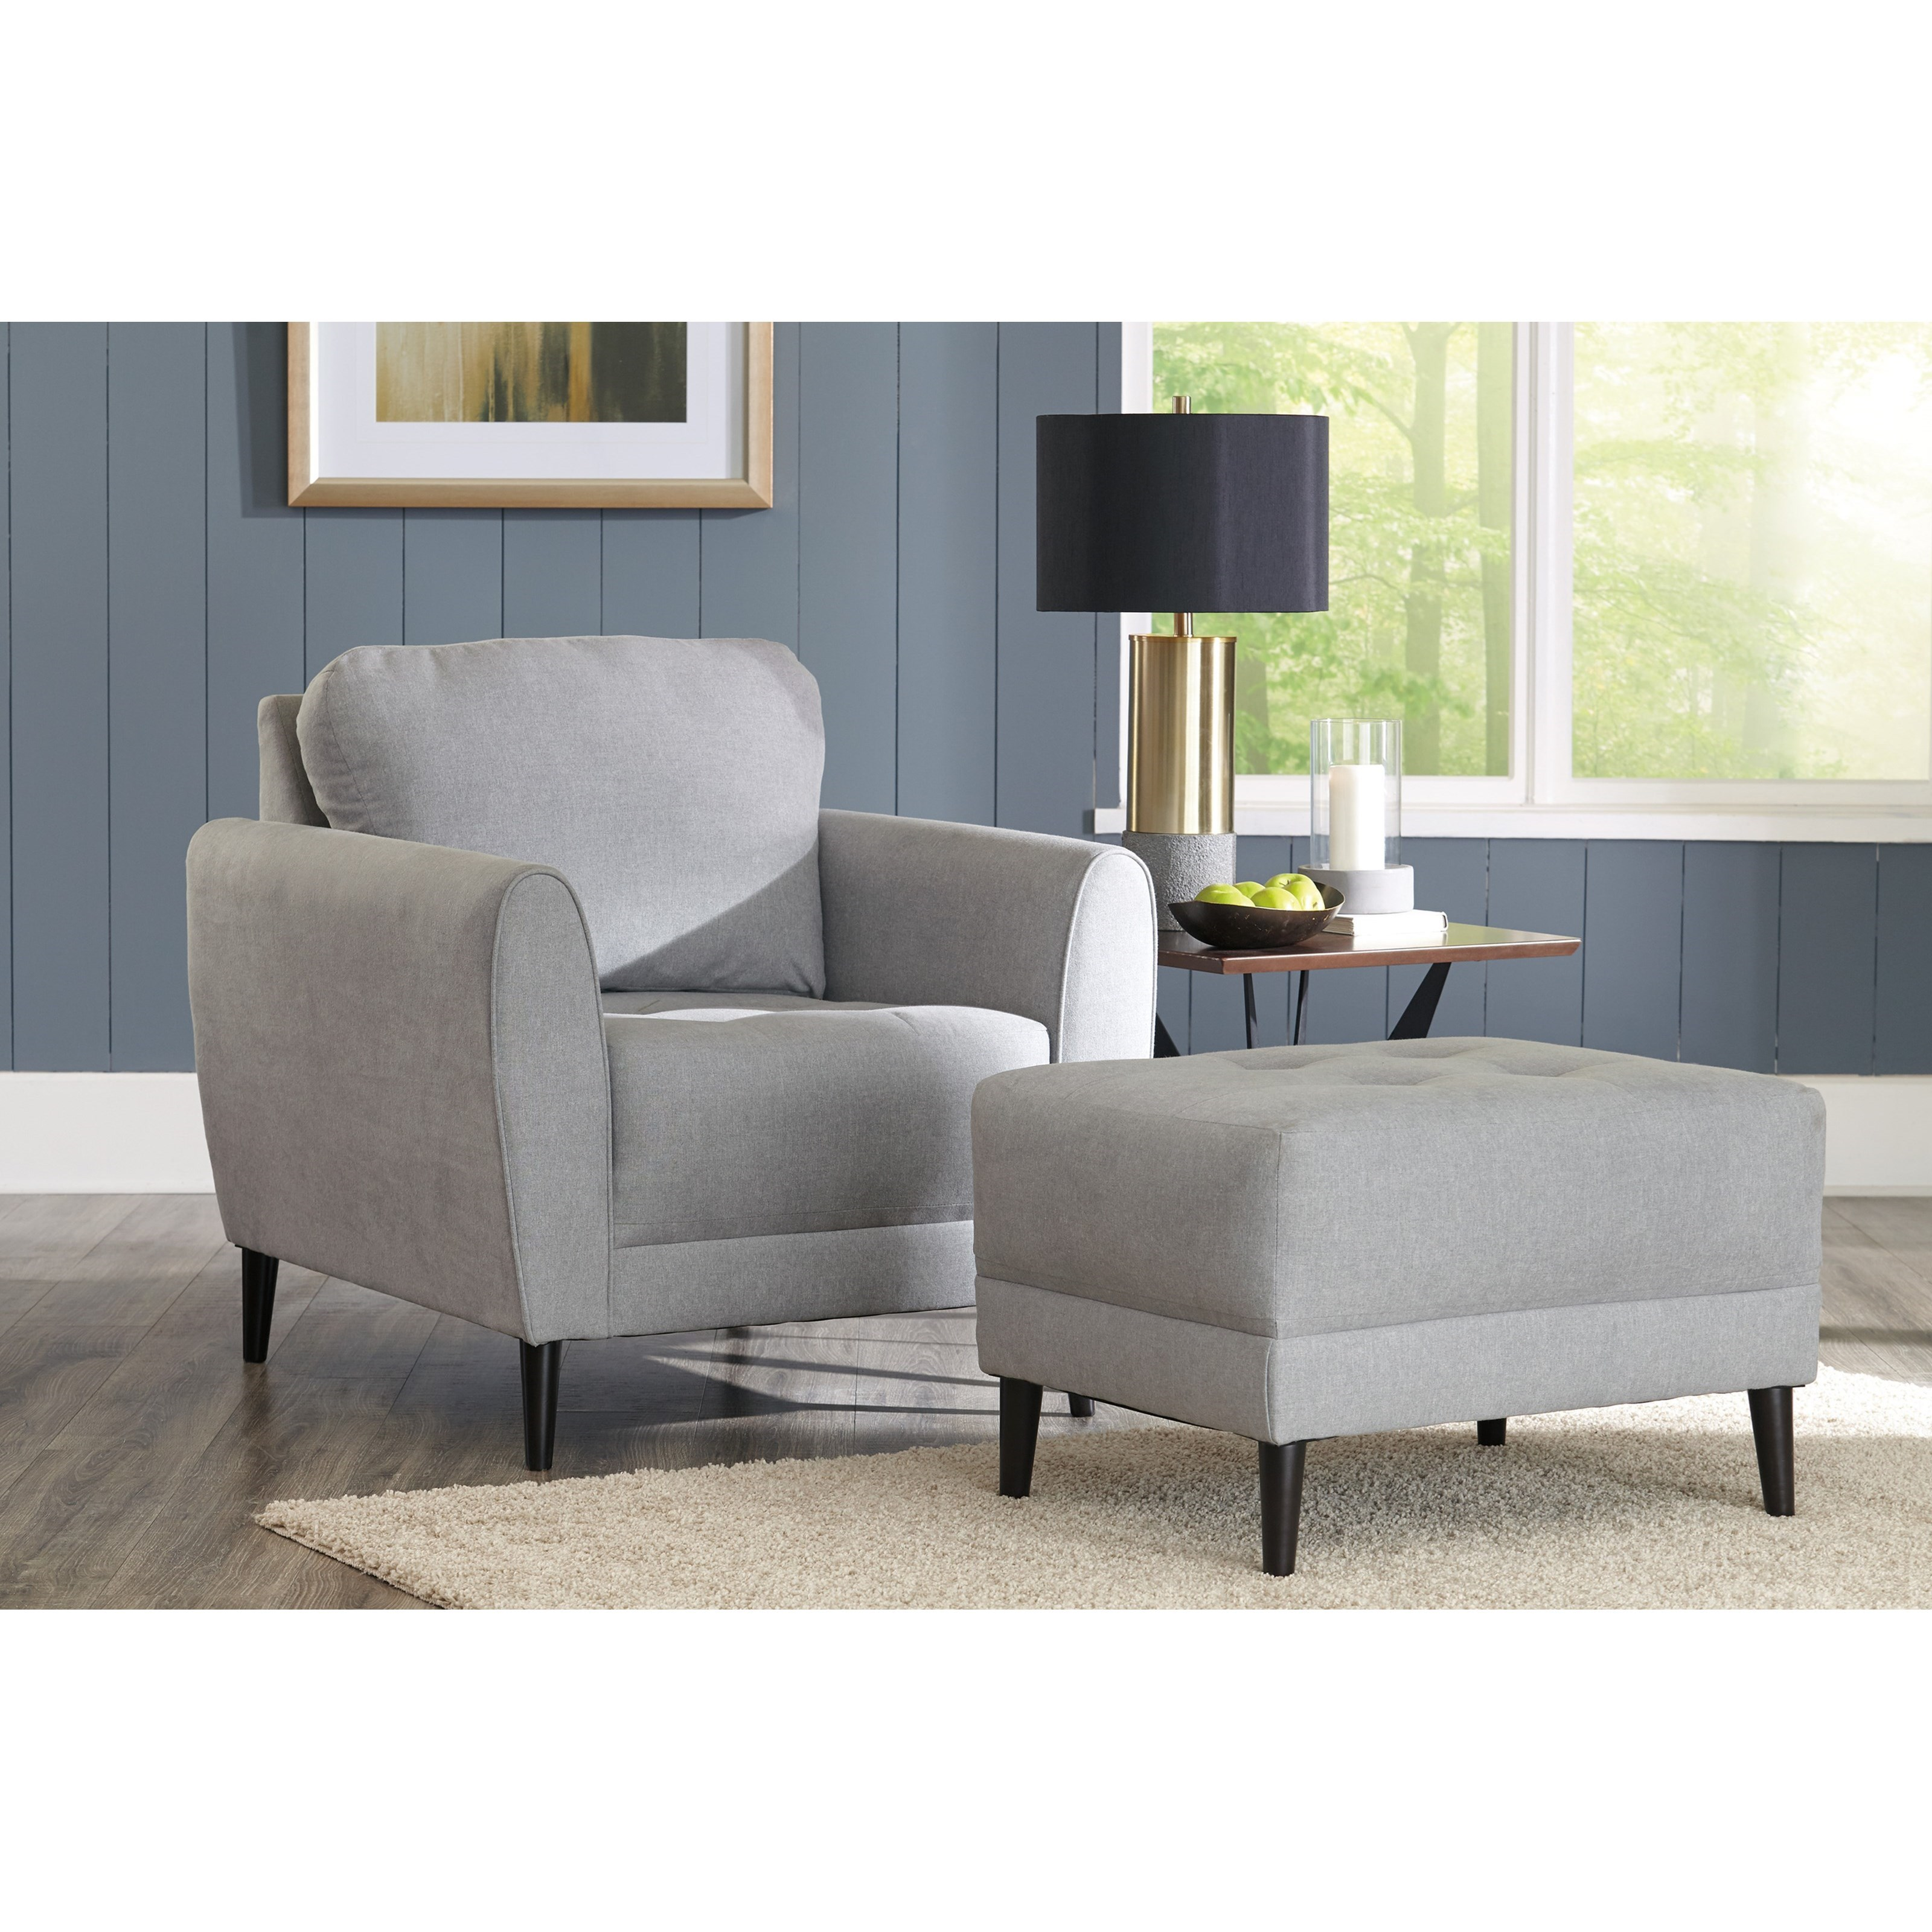 Cardello Chair and Ottoman by Signature at Walker's Furniture